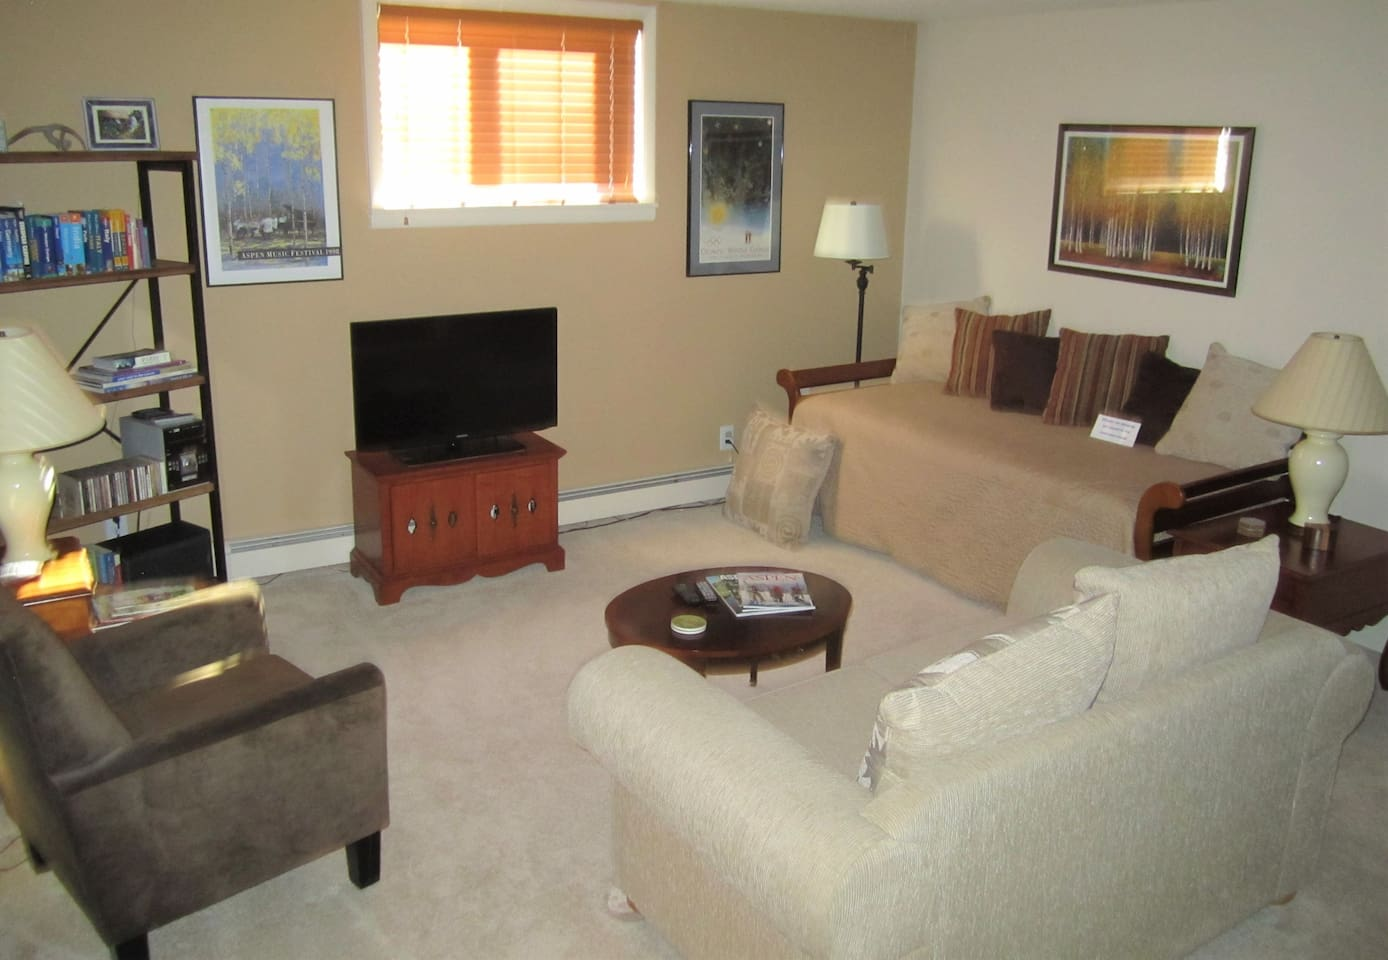 Family room includes a trundle bed